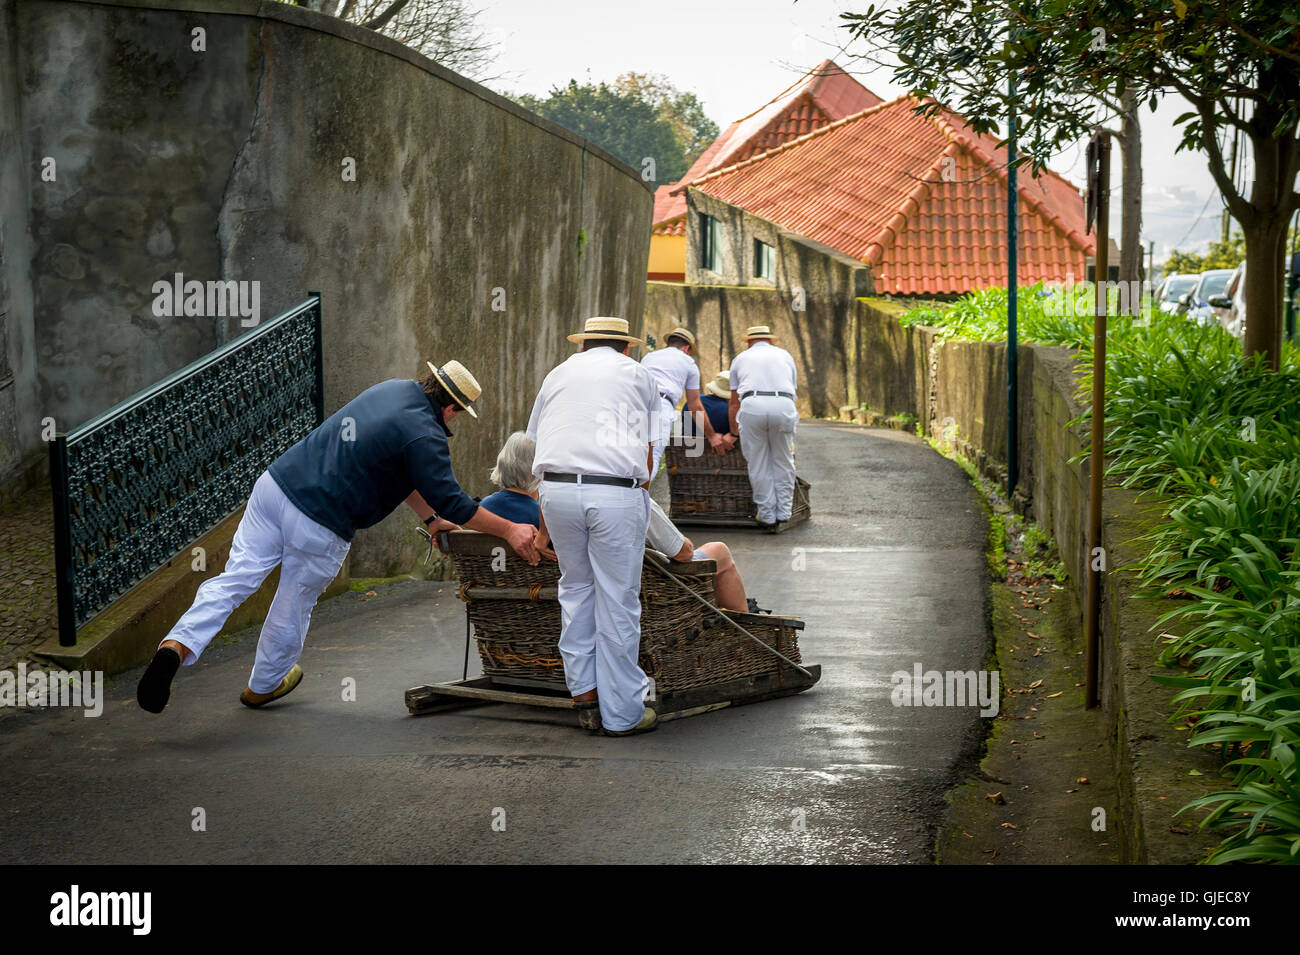 Funchal traditional sledge downhill riders in Monte park. - Stock Image